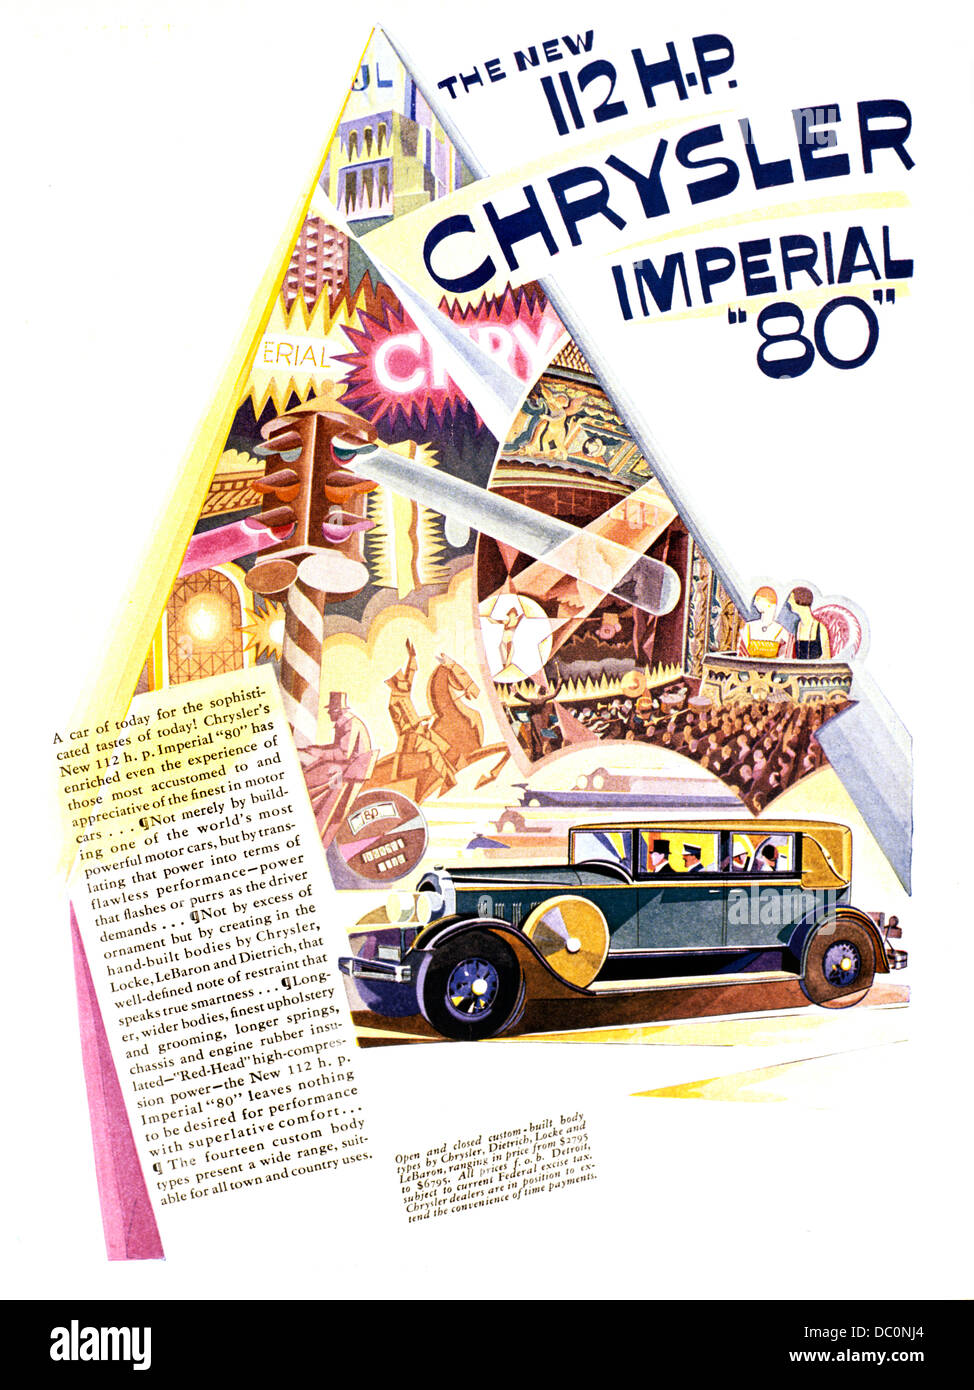 1928 AD FOR 112 H.P CHRYSLER IMPERIAL 80 AUTOMOBILE ADVERTISING FROM LIFE MAGAZINE - Stock Image